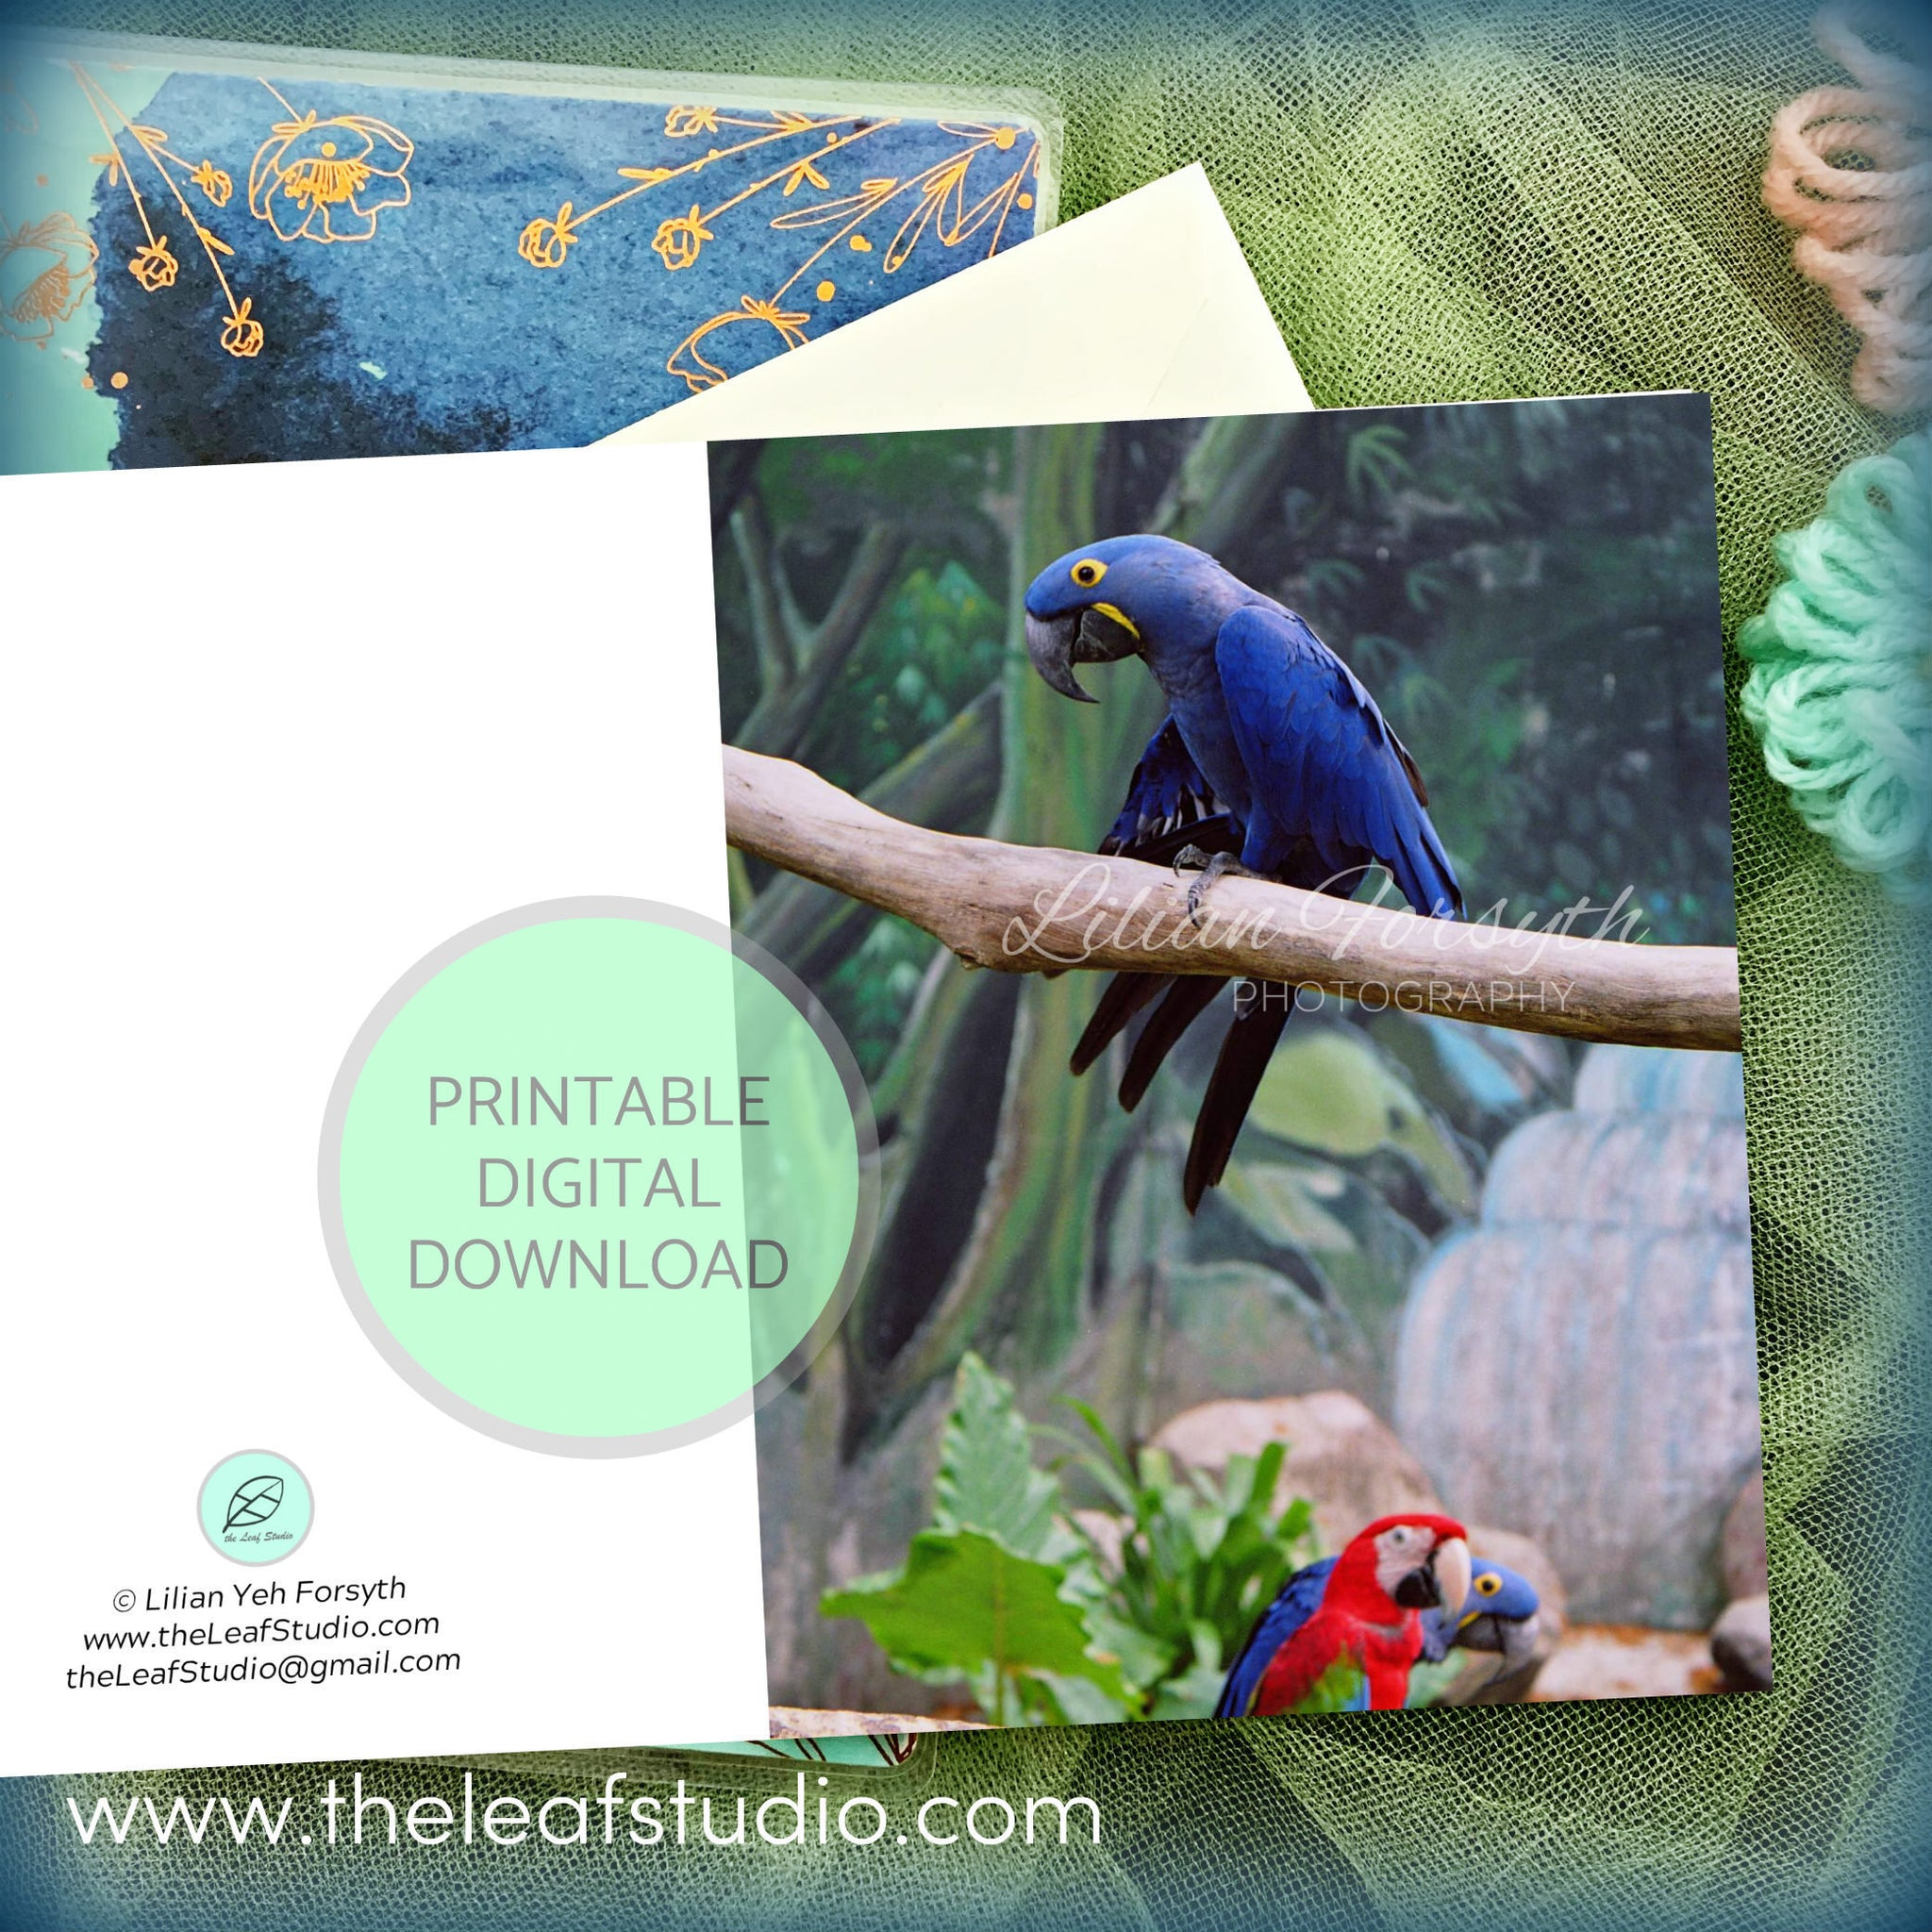 Printable Arara Azul/Blue Macaw Photography Greeting Card (Digital Instant Download) by The Leaf Studio - 4.25 x 5.5 Frameable Art